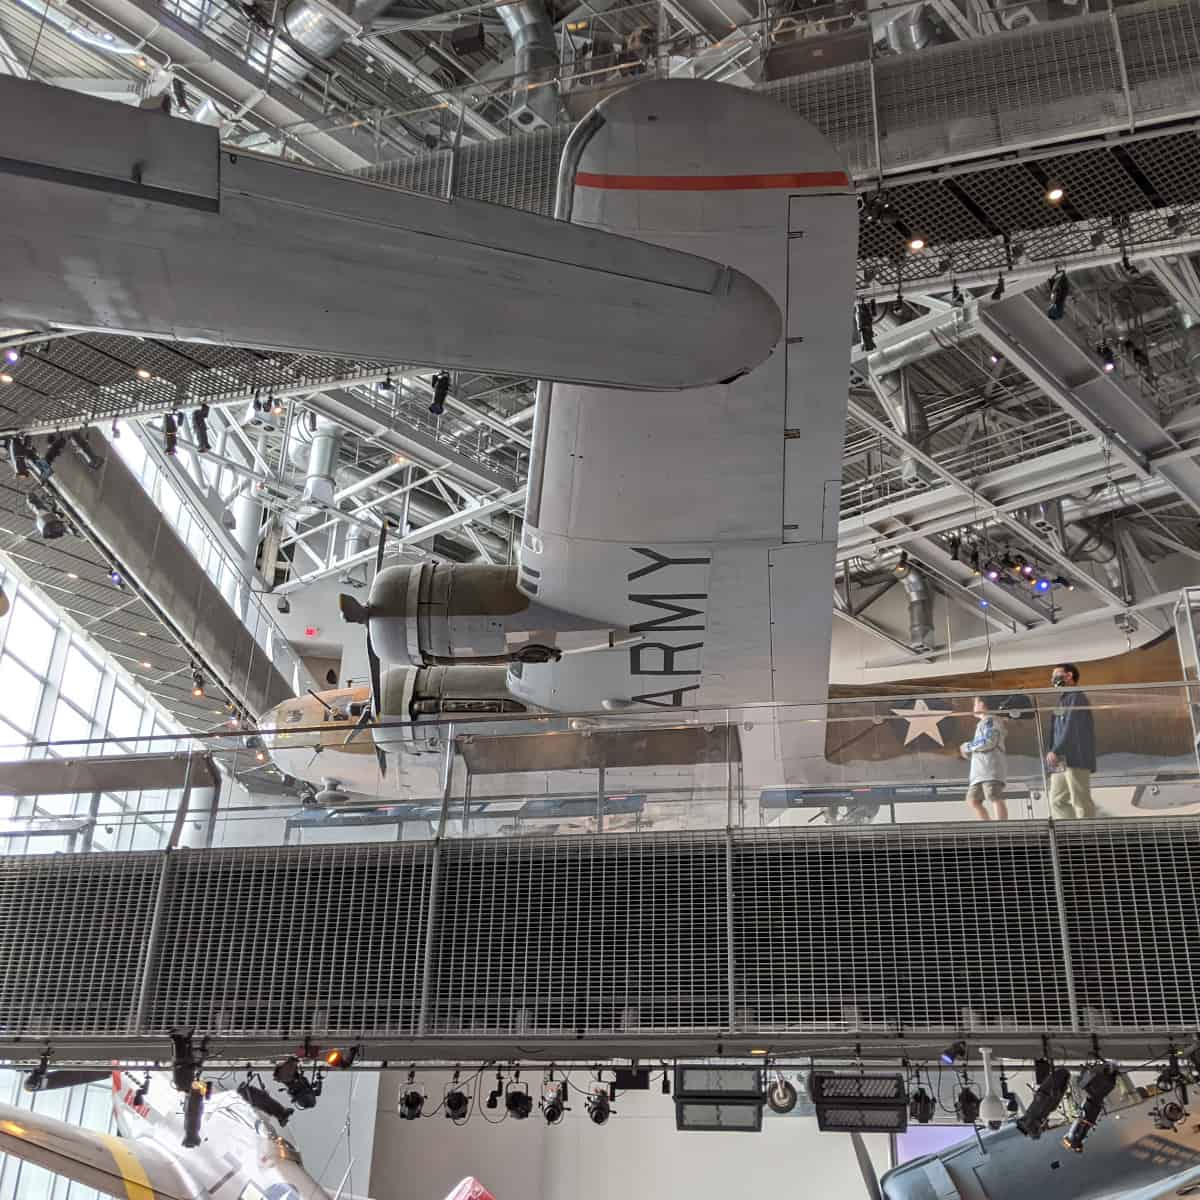 National WWII Museum New Orleans Planes